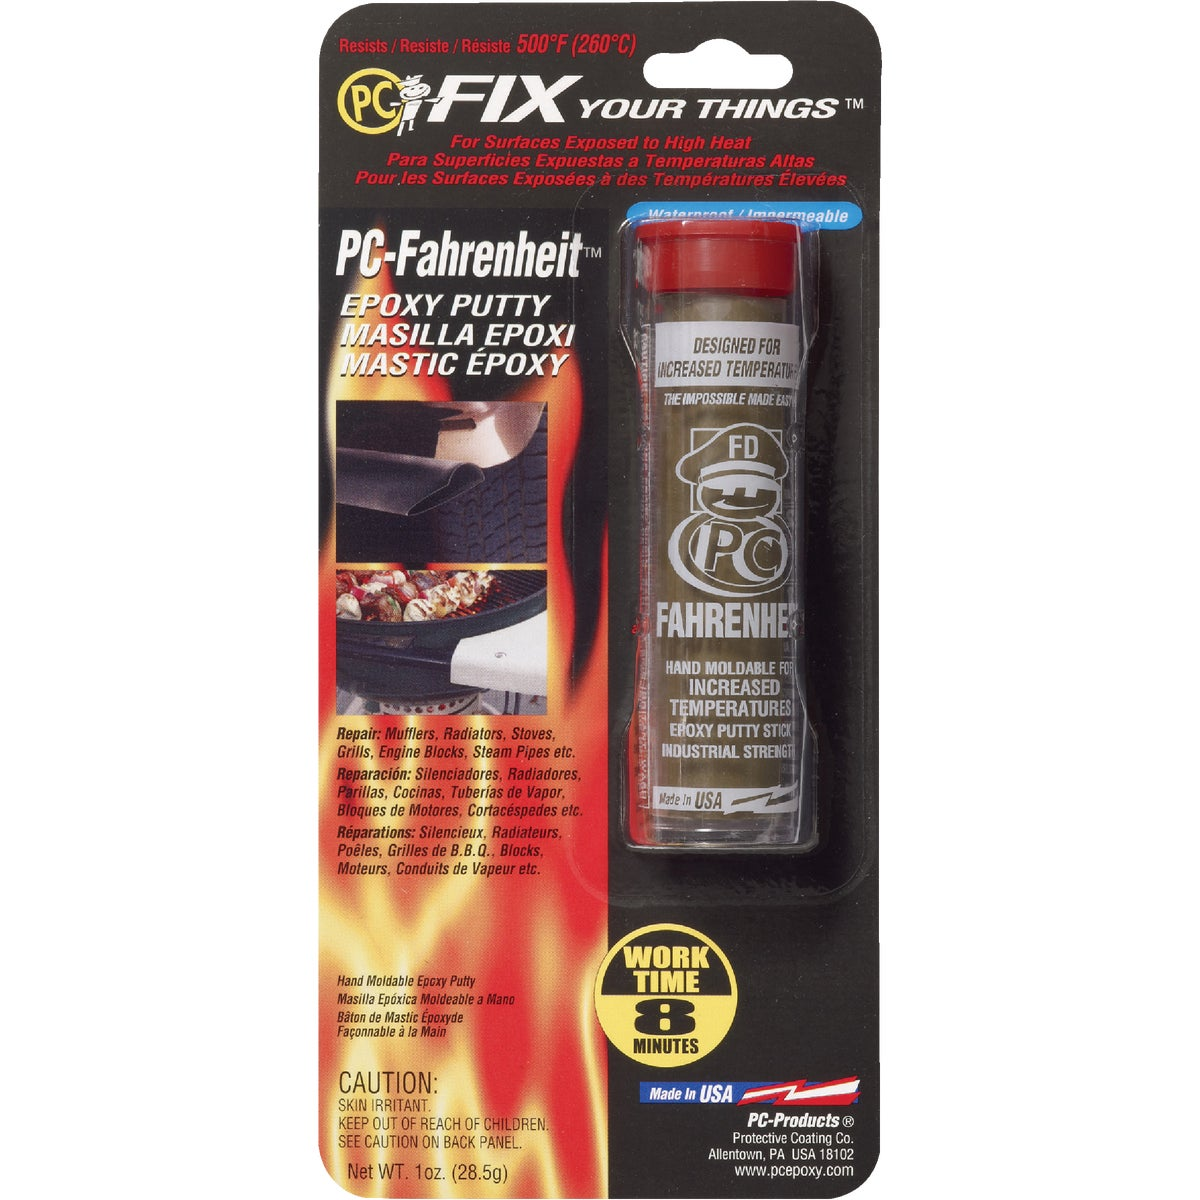 PC-FAHRENHIT EPOXY PUTTY - PC-FAHRENHEIT by Protective Coating